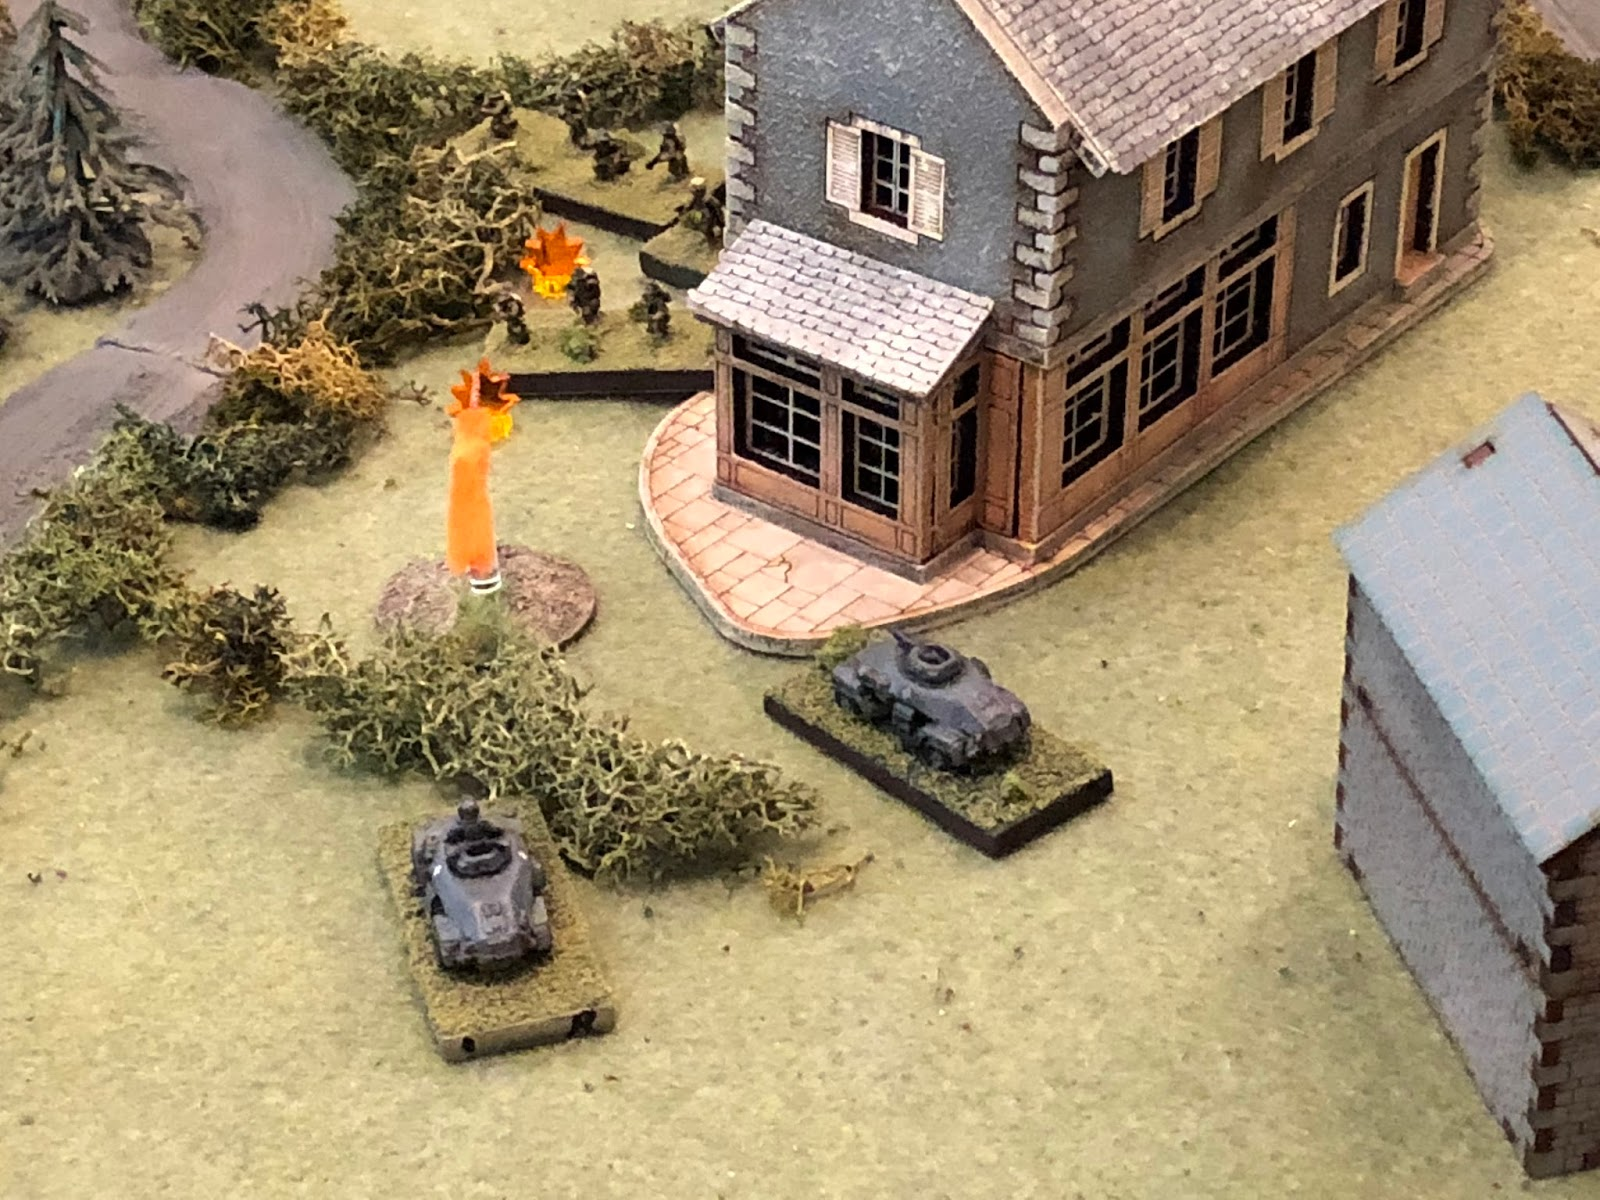 Lt Weidner rolls his vehicle up a bit (bottom left) and runs smack into Lt Renoir and two rifle squads!!!  The 20mm cannon roars...